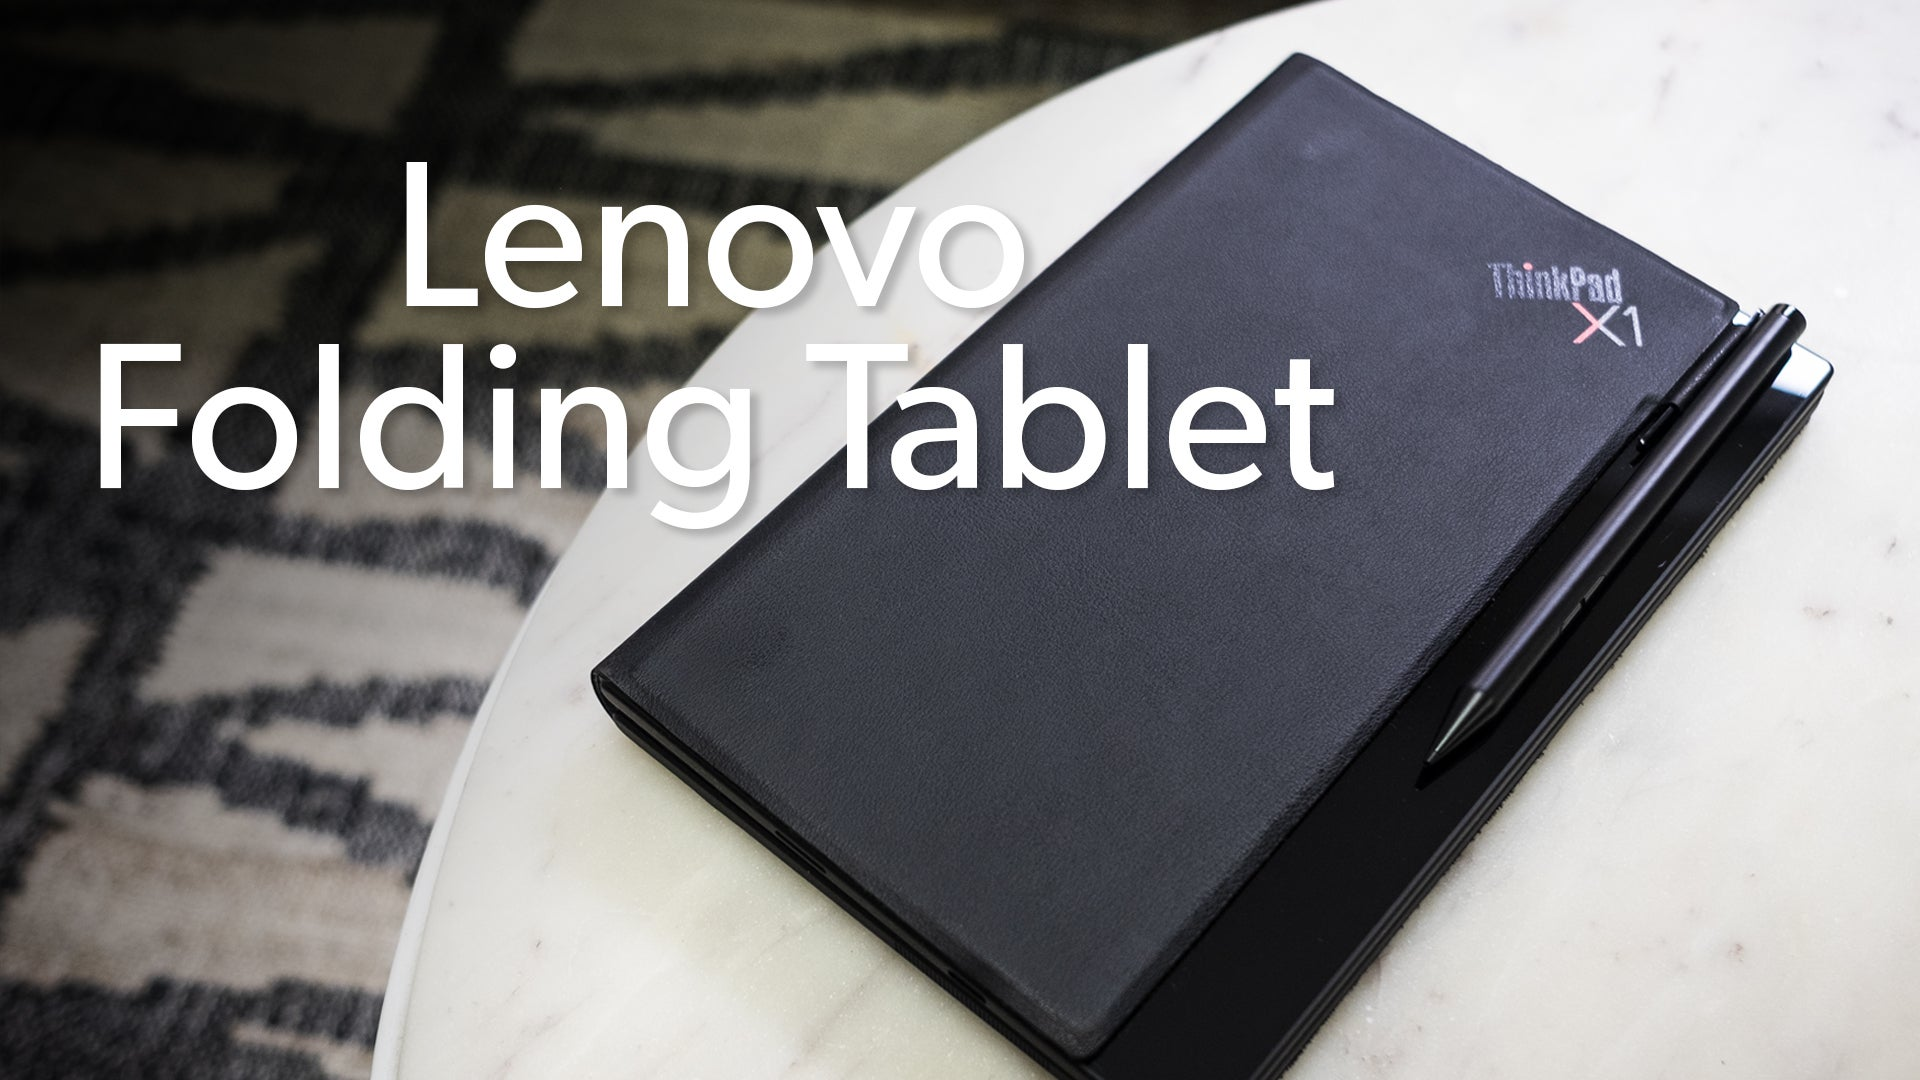 Lenovo ThinkPad X1 Folio